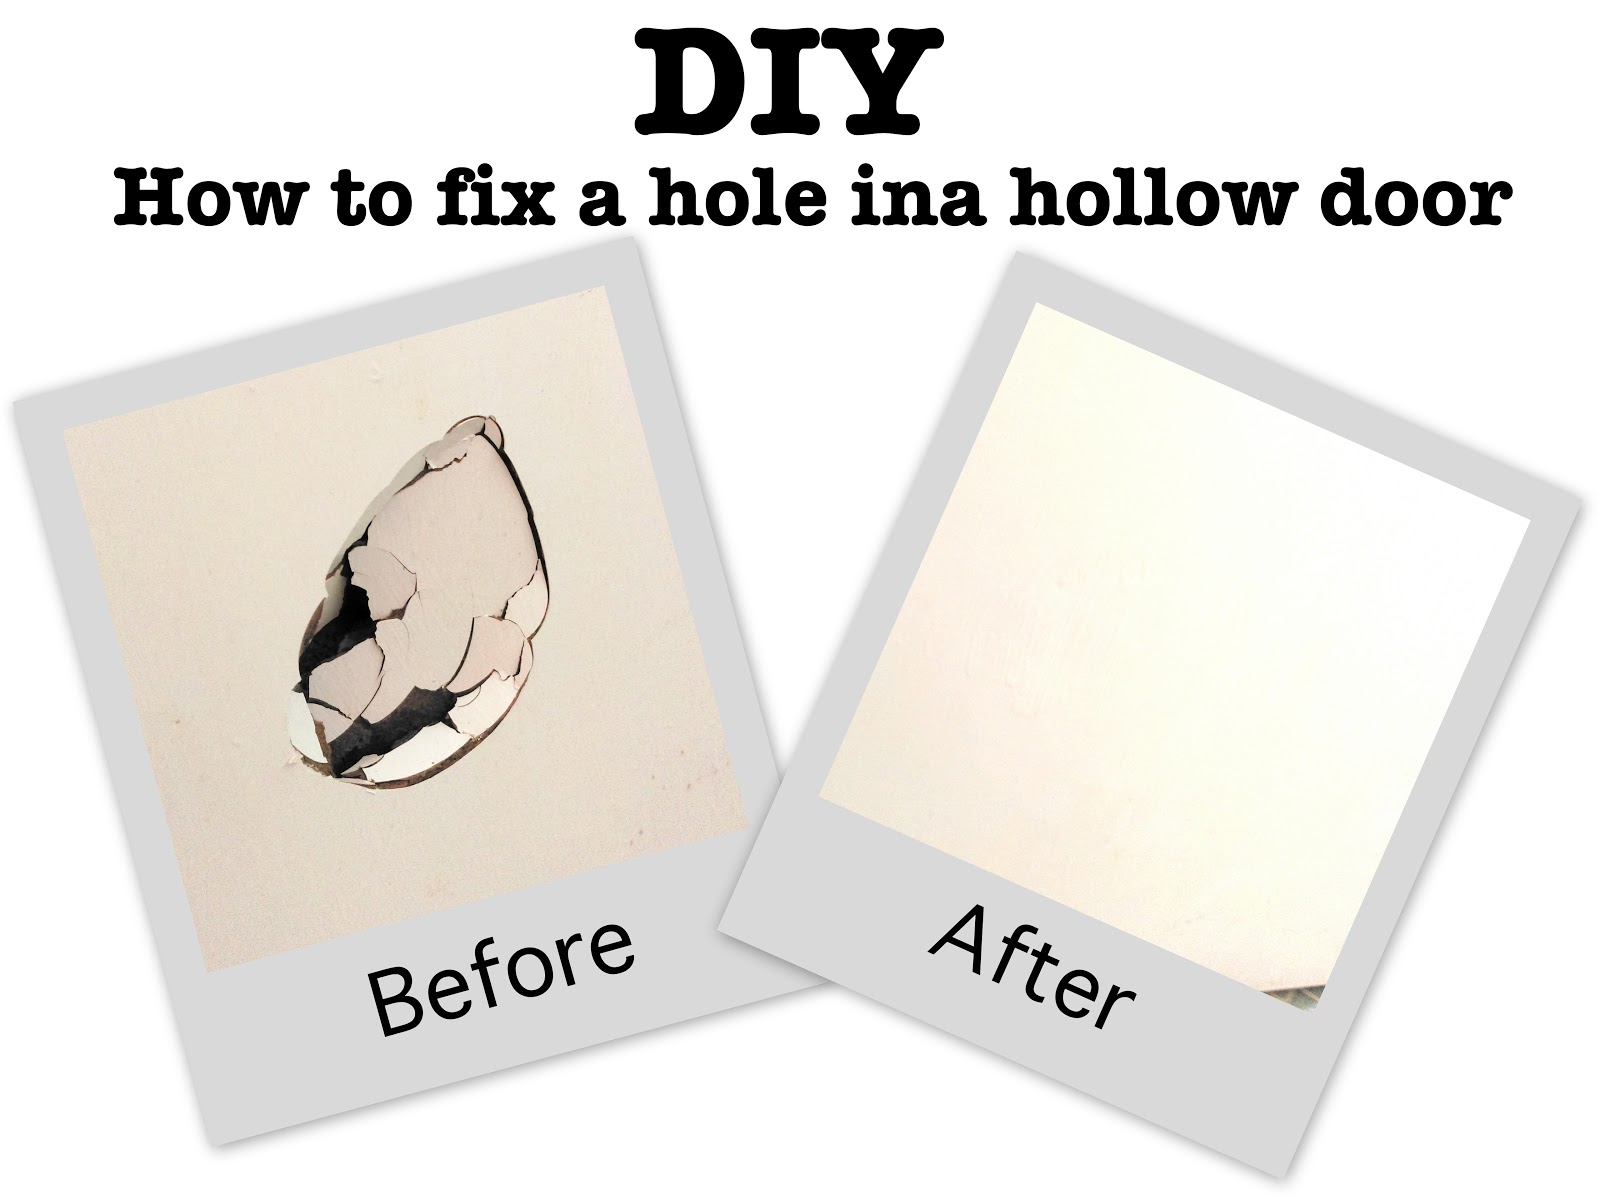 Home Diy How To Fix Hole In A Hollow Door